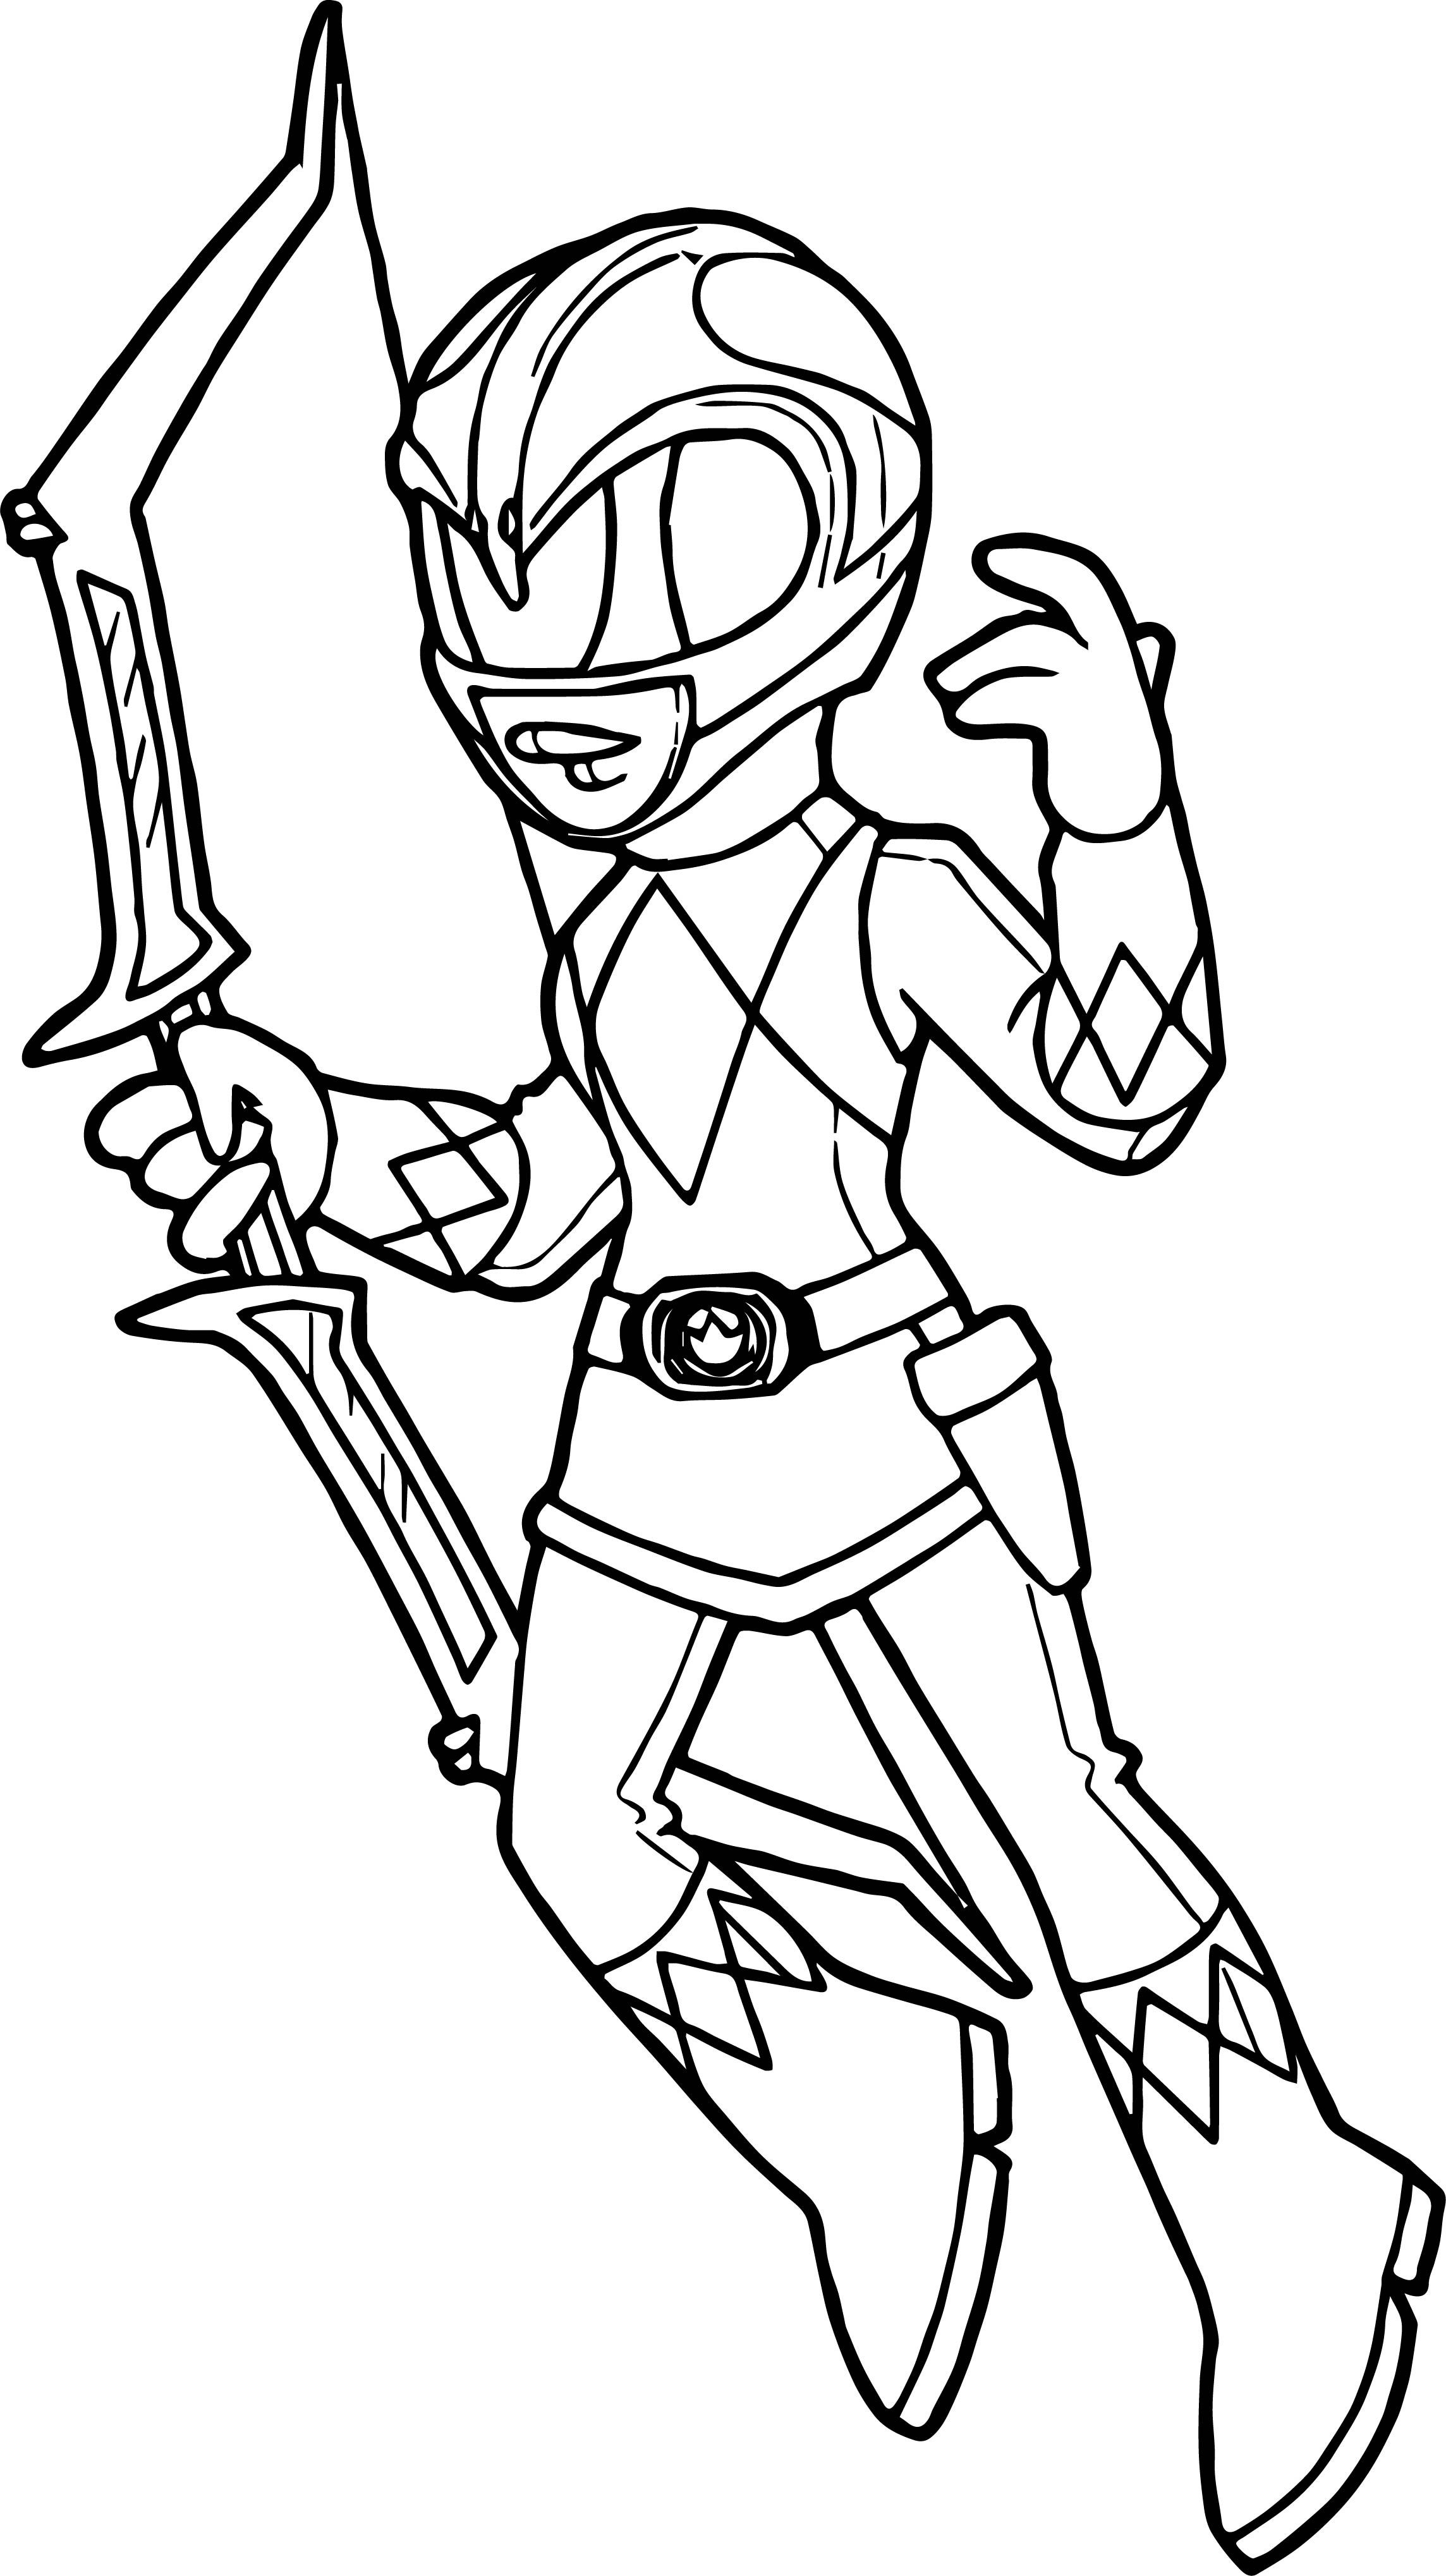 Cool Power Rangers Pink Ranger Coloring Page Power Rangers Coloring Pages Minion Coloring Pages Coloring Book Pages